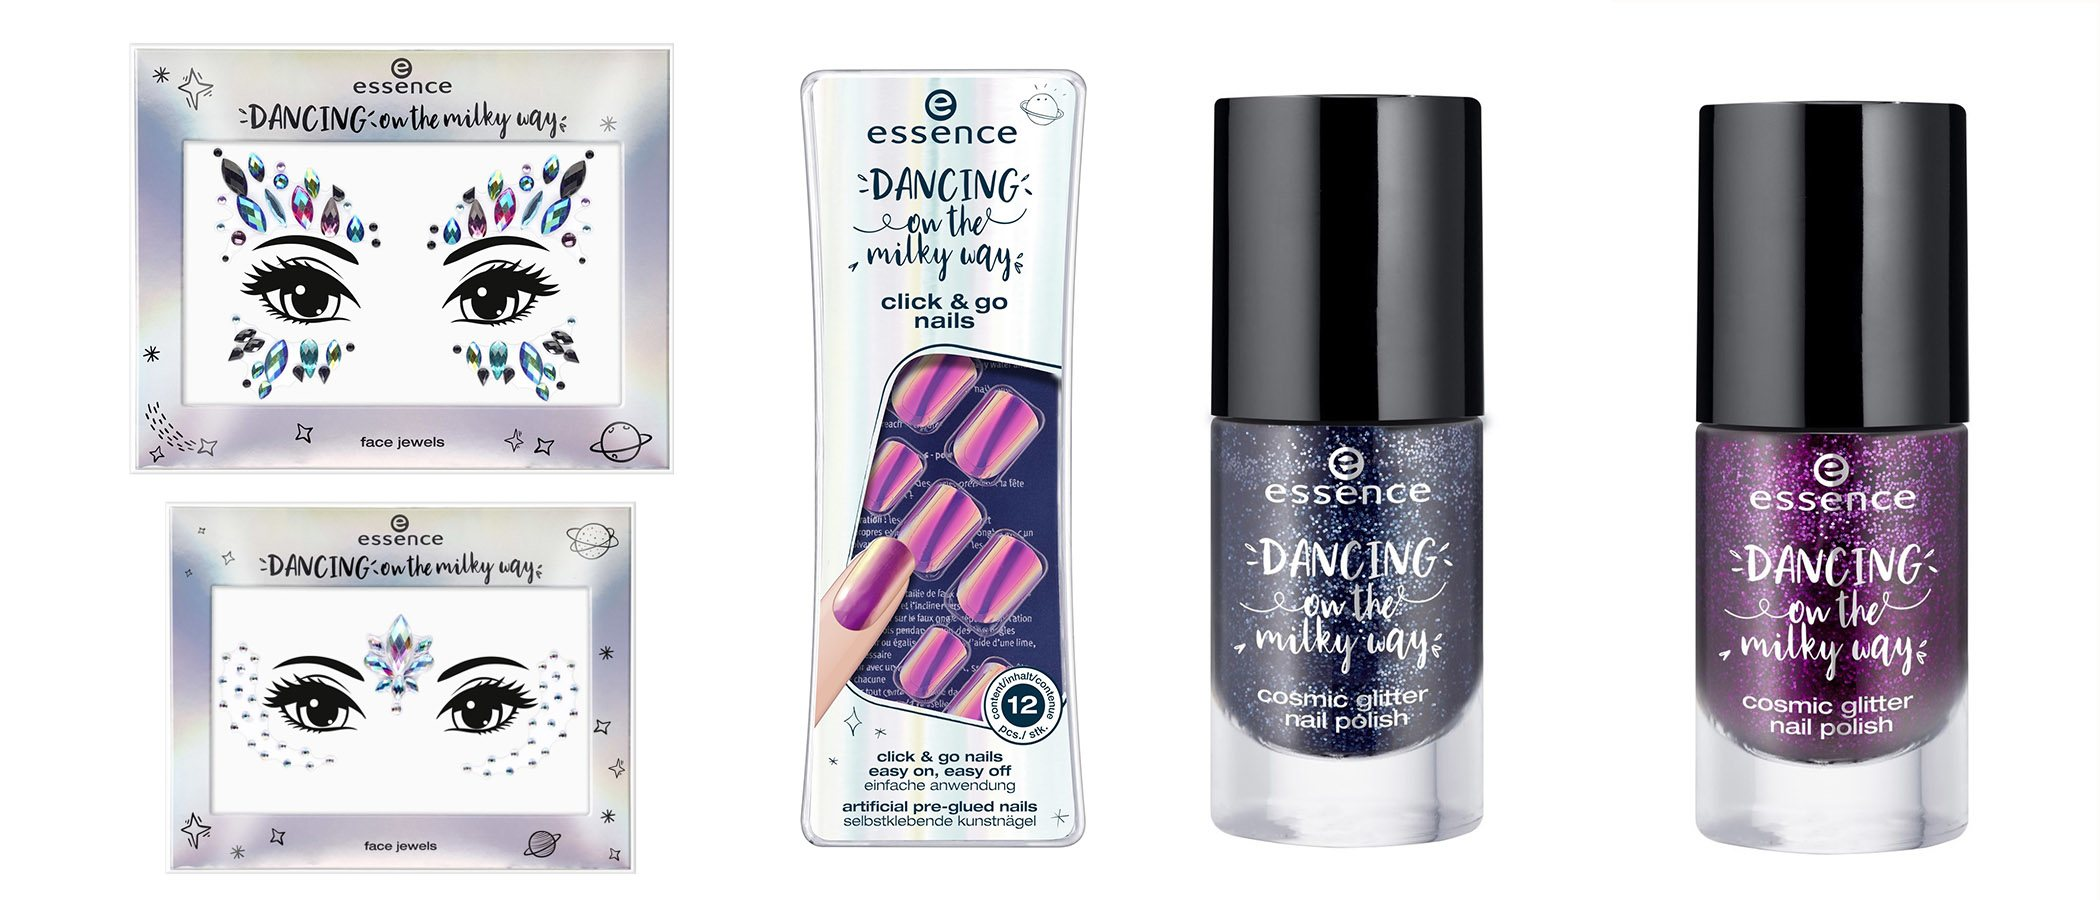 Productos de la nueva colección 'Dancing on the mily way' de Essence